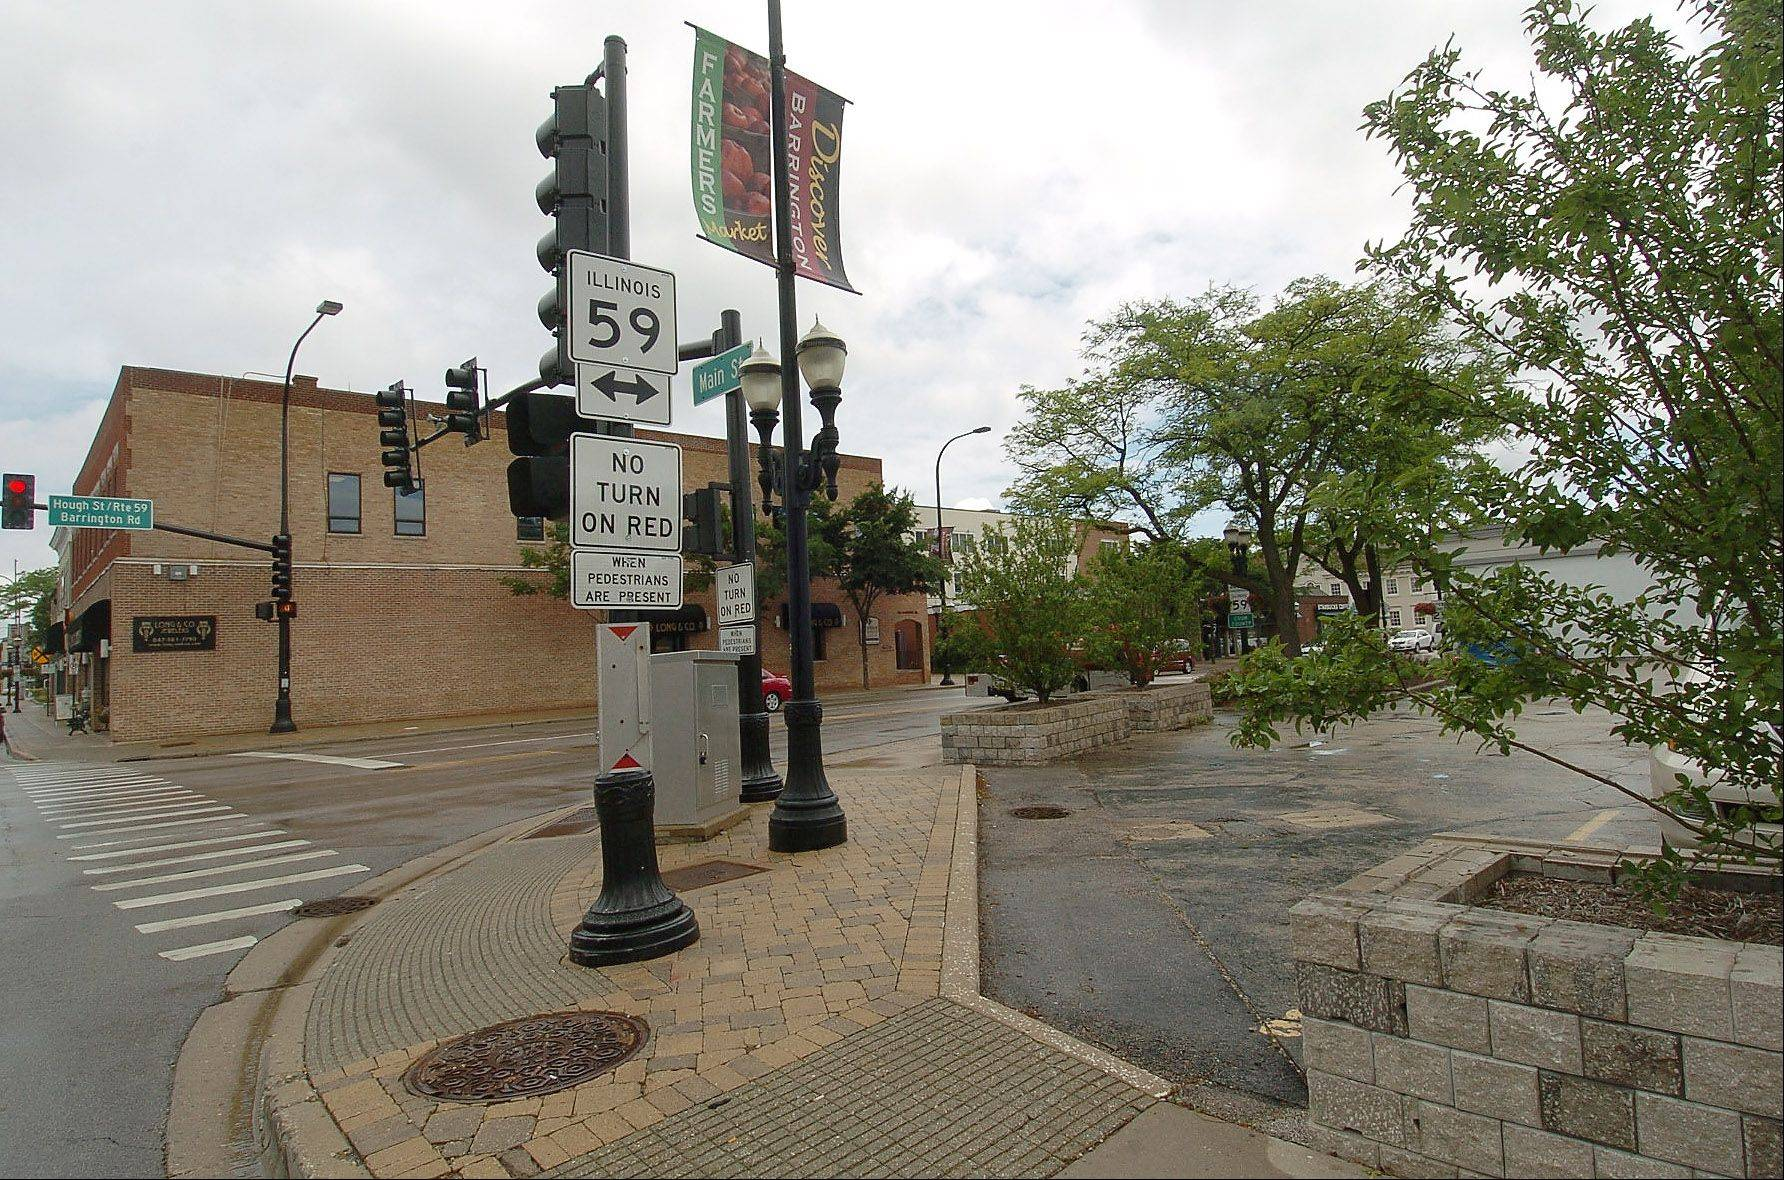 Debate continues over plans to redevelop the corner of Hough and Main Streets in downtown Barrington. Opponents of the current plan, which calls for a mix of retail and office space, say it lacks the residential component needed to help the downtown flourish.